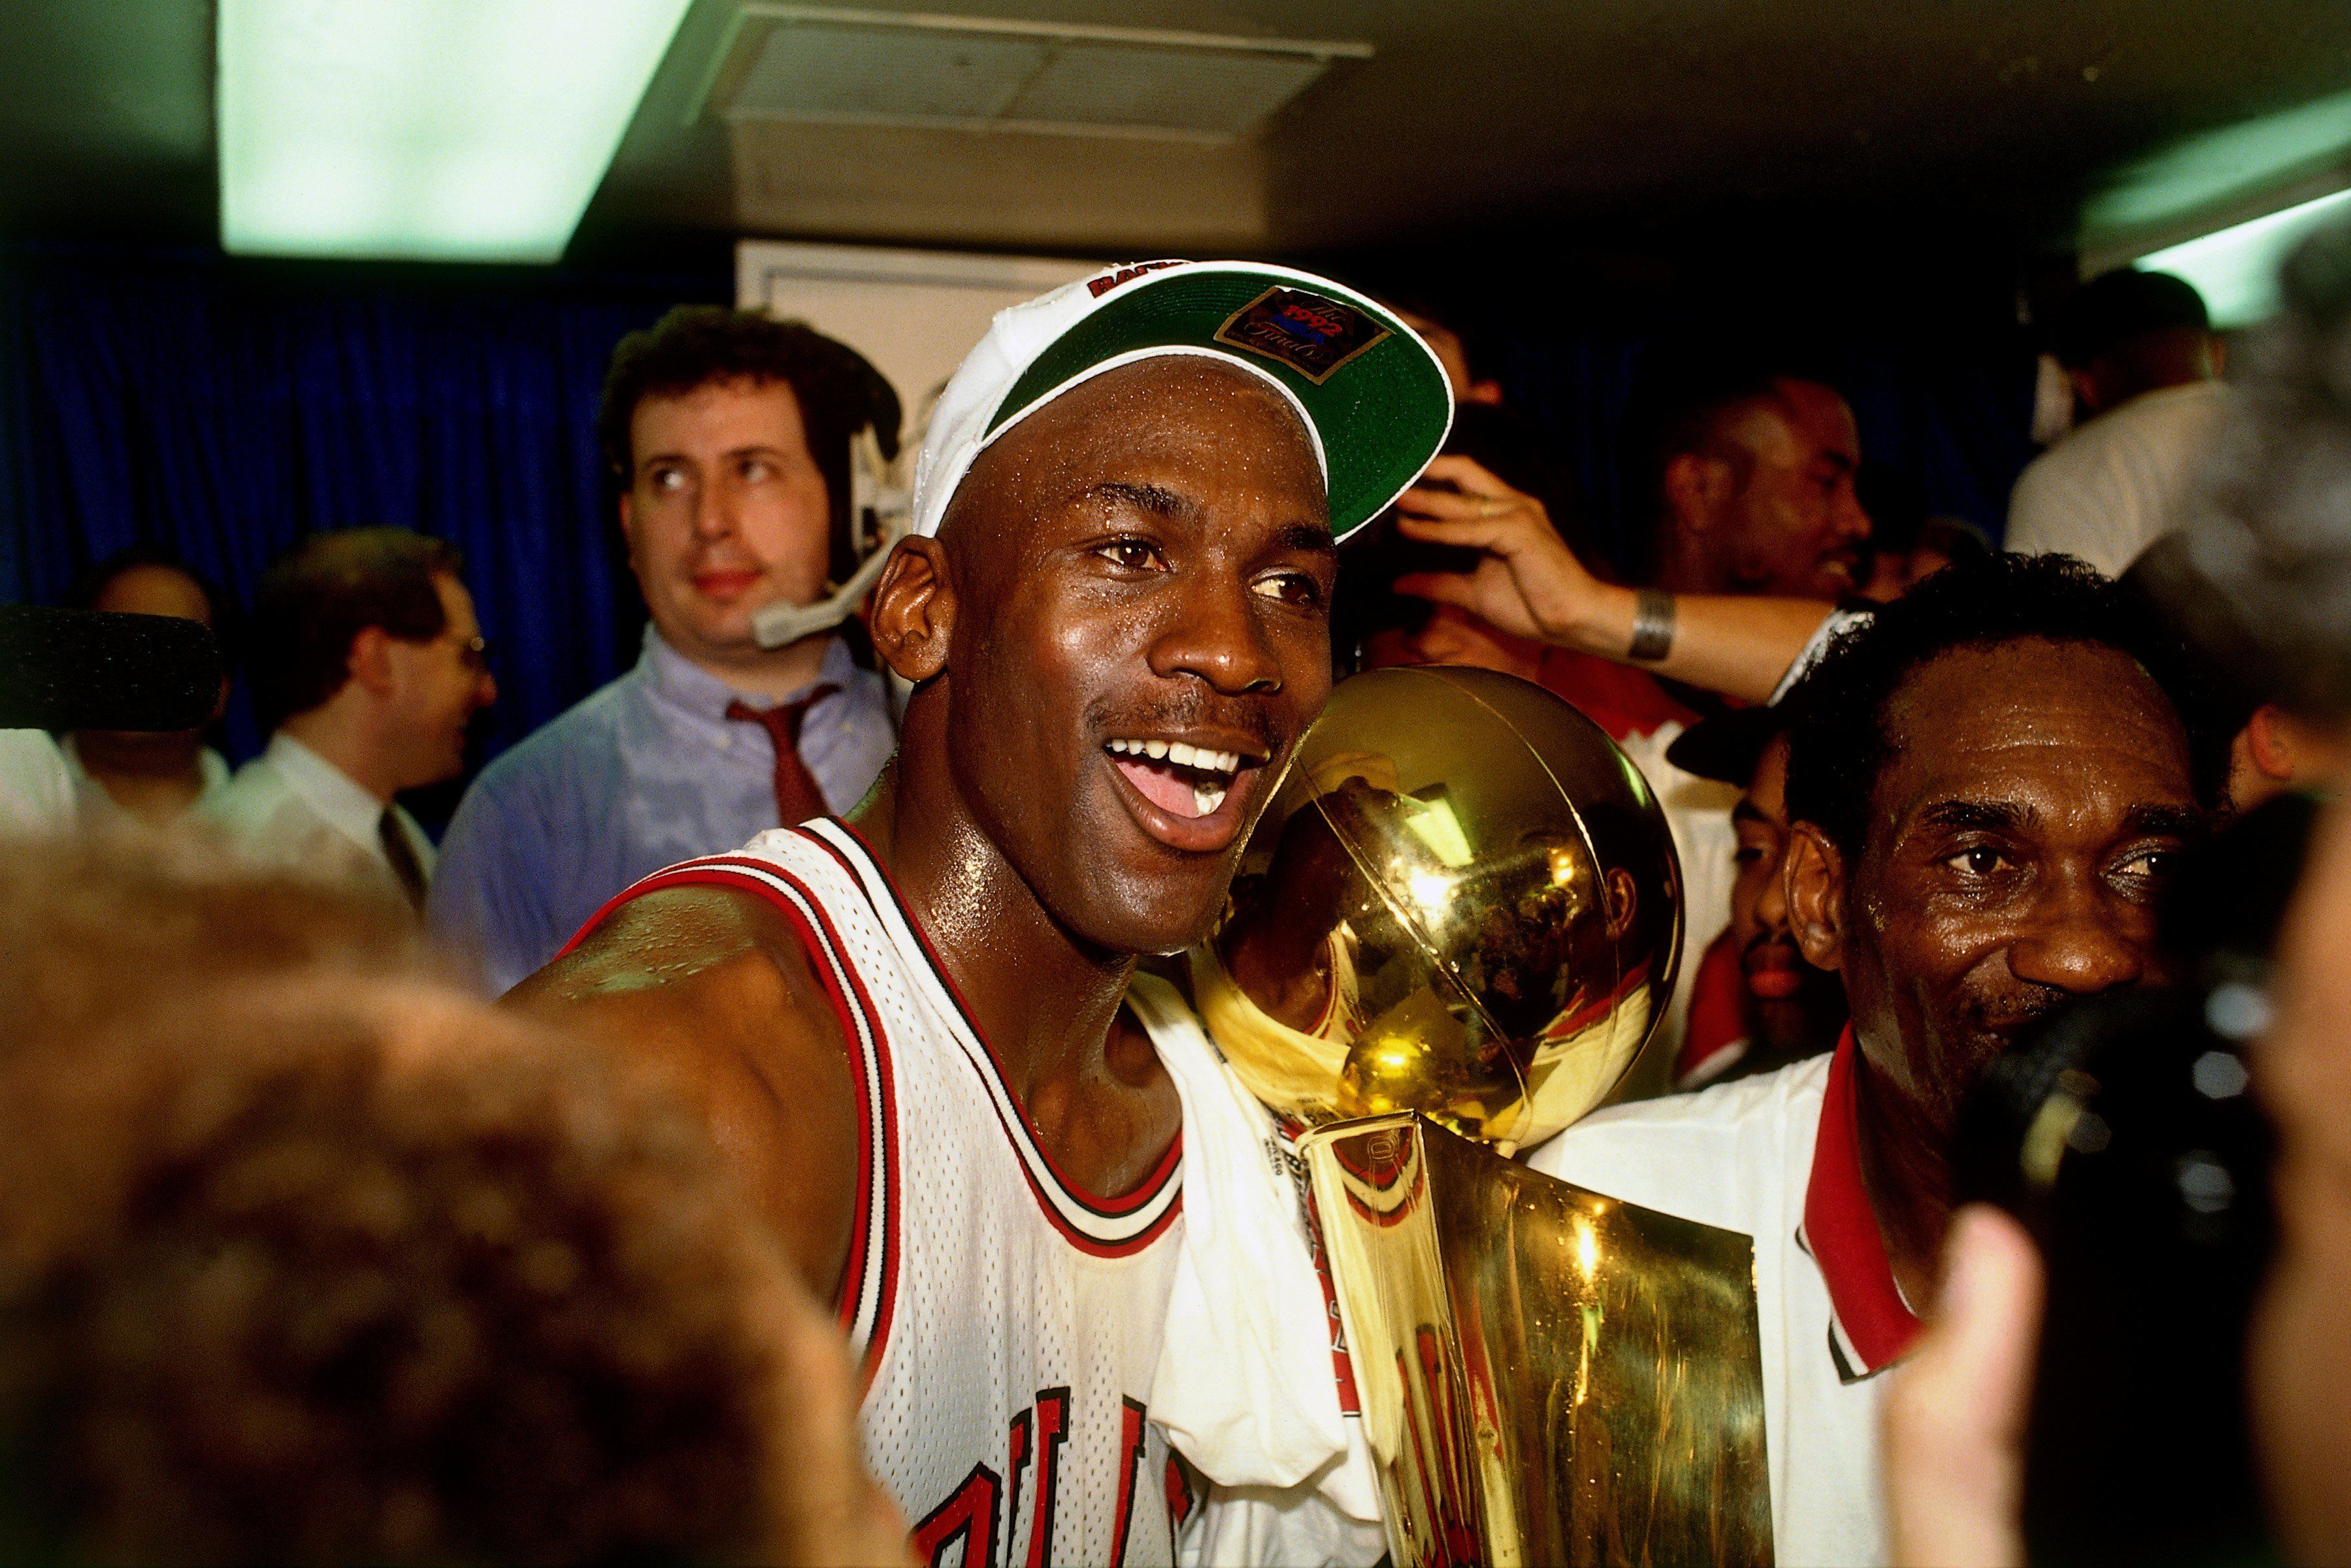 CHICAGO, IL - JUNE 14: Michael Jordan #23 of the Chicago Bulls celebrates after Game 6 of the NBA Finals against the Portland Trail Blazers on June 14, 1992 at Chicago Stadium in Chicago, Illinois.  The Bulls defeated the Trail Blazers 97-93 and 4-2.  NOTE TO USER: User expressly acknowledges that, by downloading and or using this photograph, User is consenting to the terms and conditions of the Getty Images License agreement. Mandatory Copyright Notice: Copyright 1992 NBAE (Photo by Nathaniel S. Butler/NBAE via Getty Images)